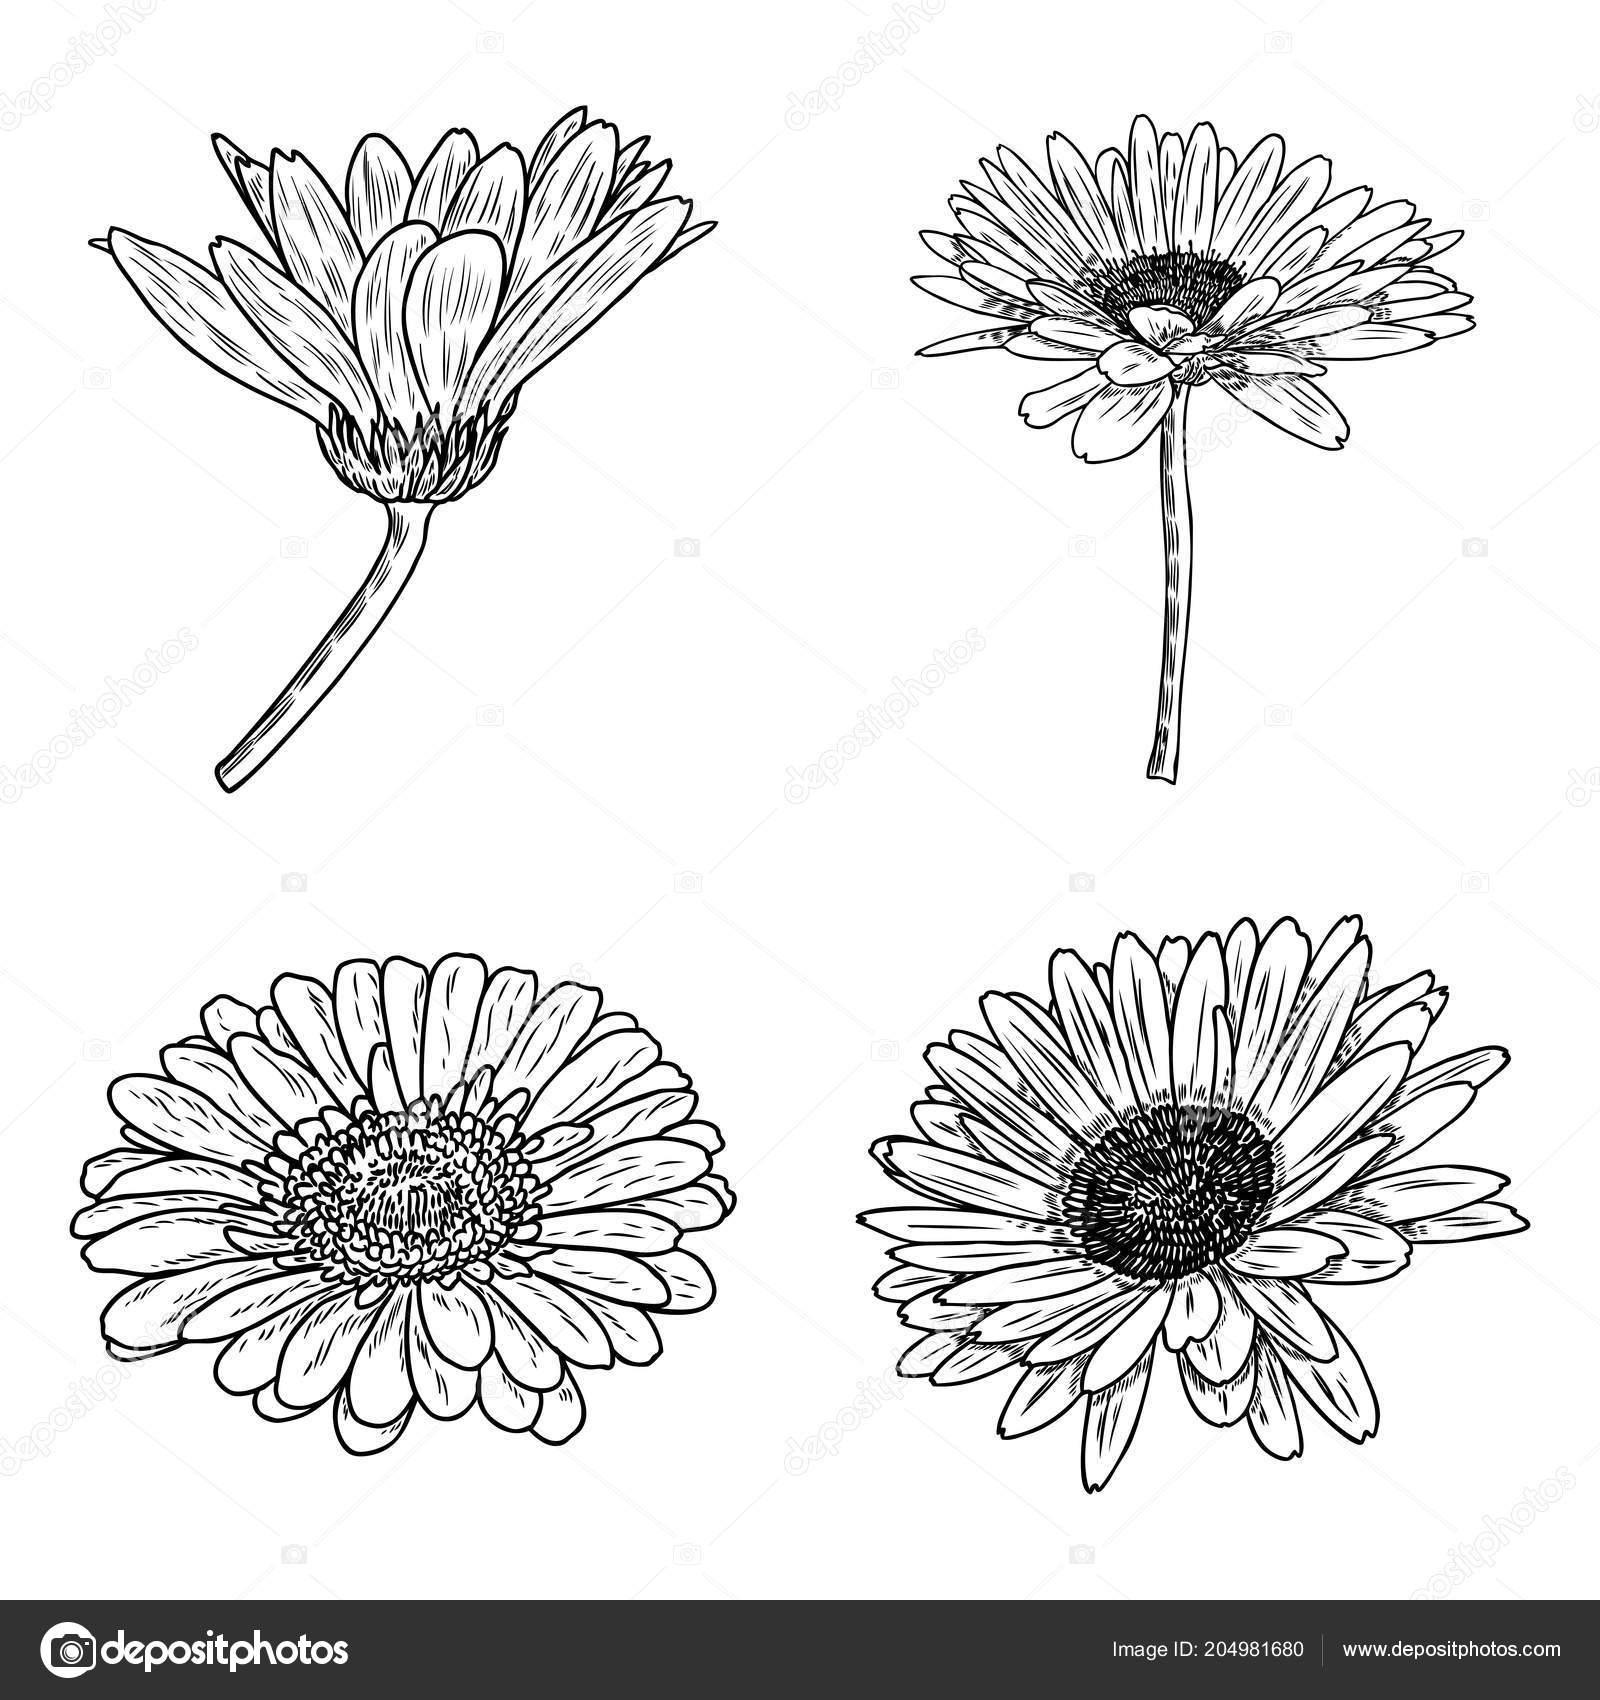 Daisy floral botany collection sketch daisy flower drawings black daisy floral botany collection sketch daisy flower drawings black and white line art isolated on white backgrounds hand drawn botanical illustrations izmirmasajfo